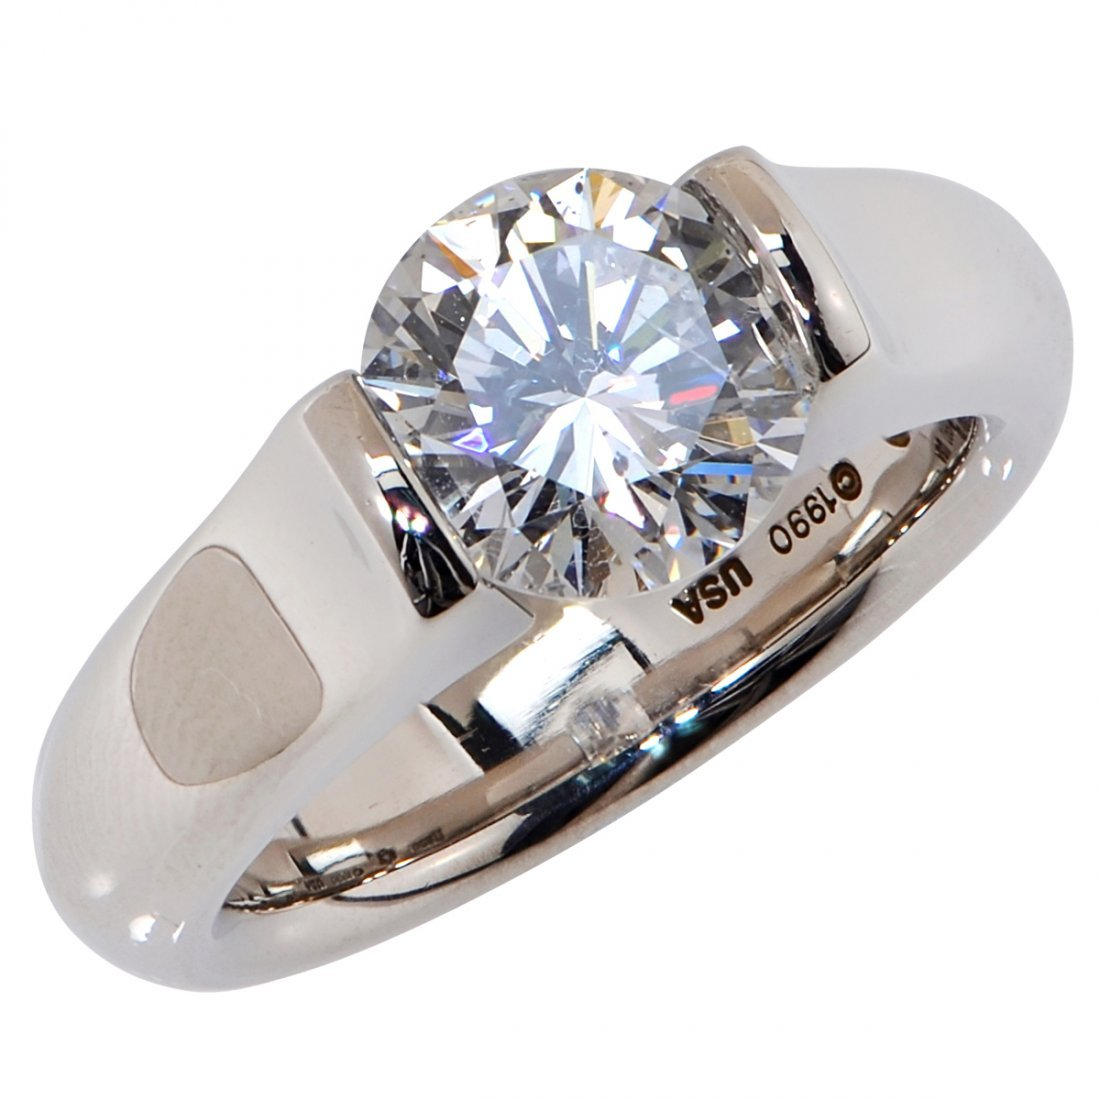 Steven Kretchmer: Platinum Diamond Ring, 2.5 ctw